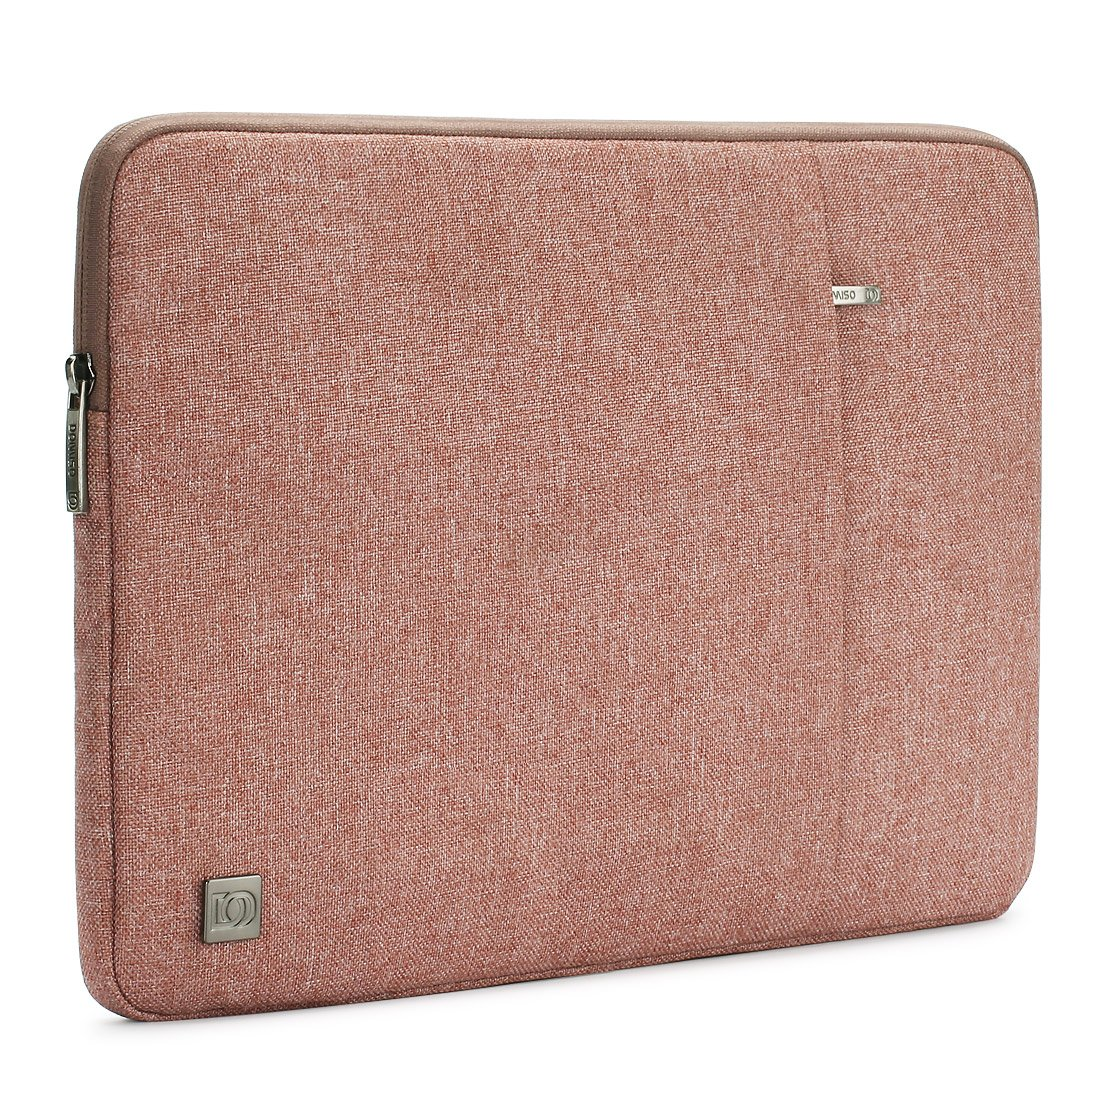 DOMISO 13.3 Inch Water-Resistant Laptop Sleeve Carrying Case Bag for 13'' MacBook Pro / 13.5'' Microsoft Surface Book / 13.3'' Notebook, Pink